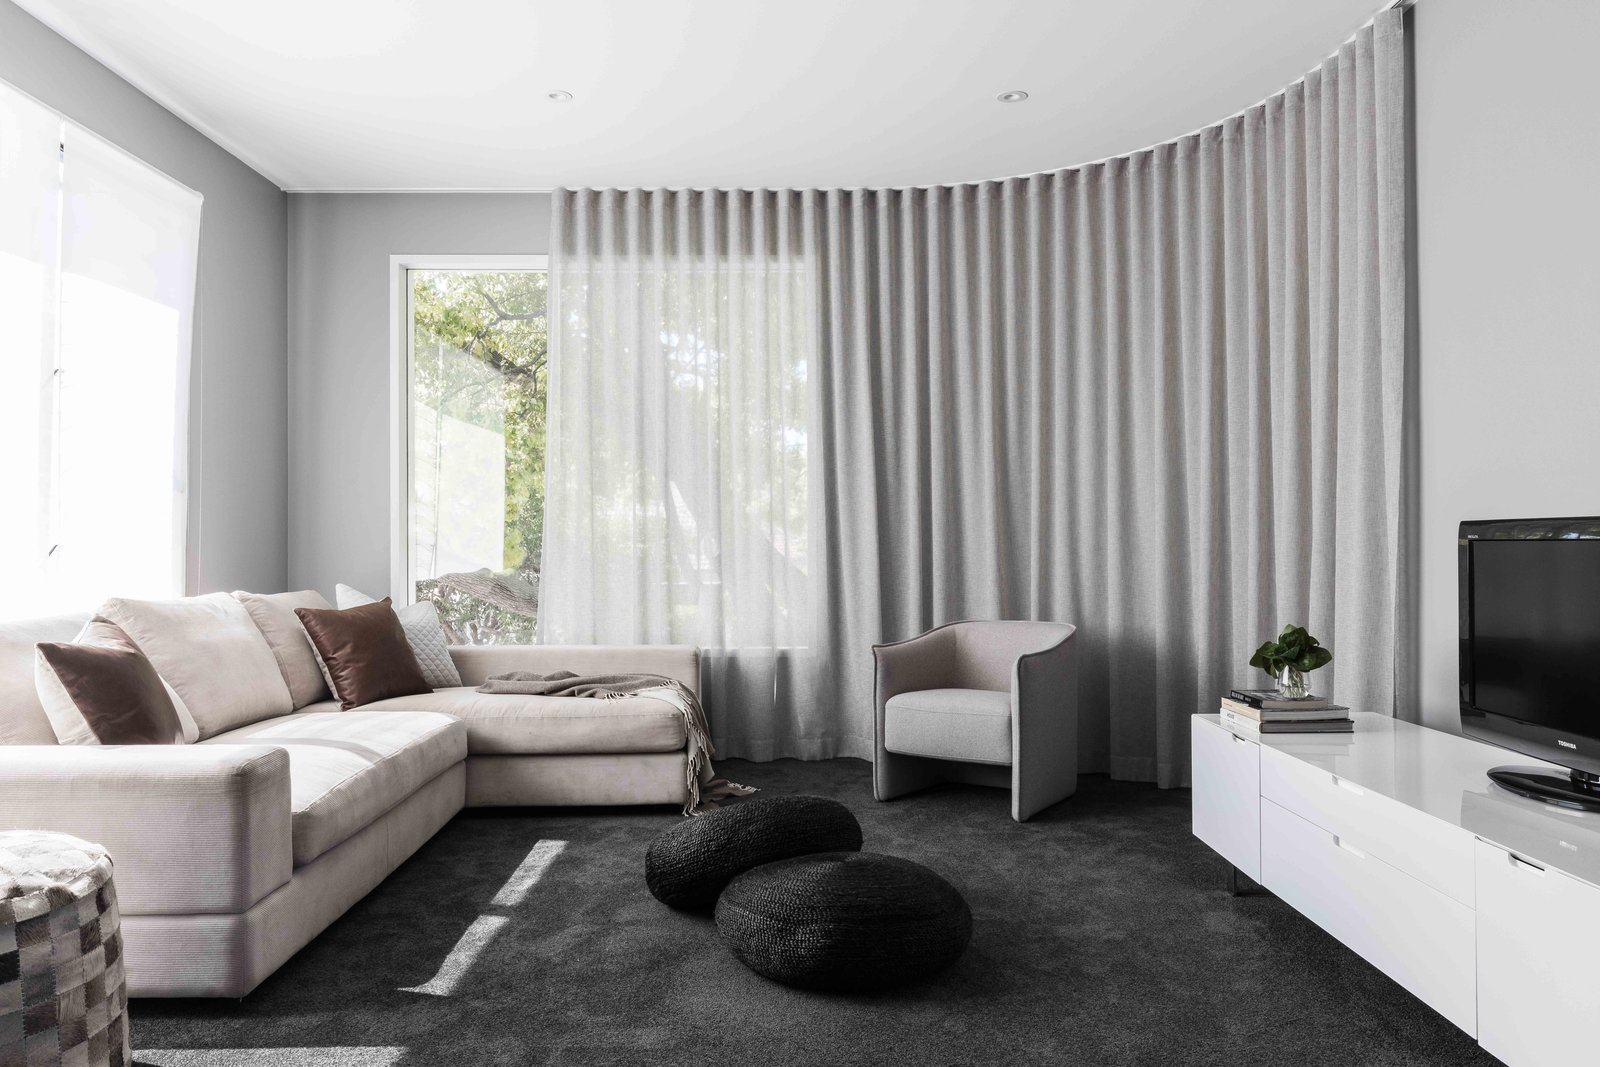 Living Room, Chair, Sofa, and Ottomans  The Rose Bay House by Prebuilt